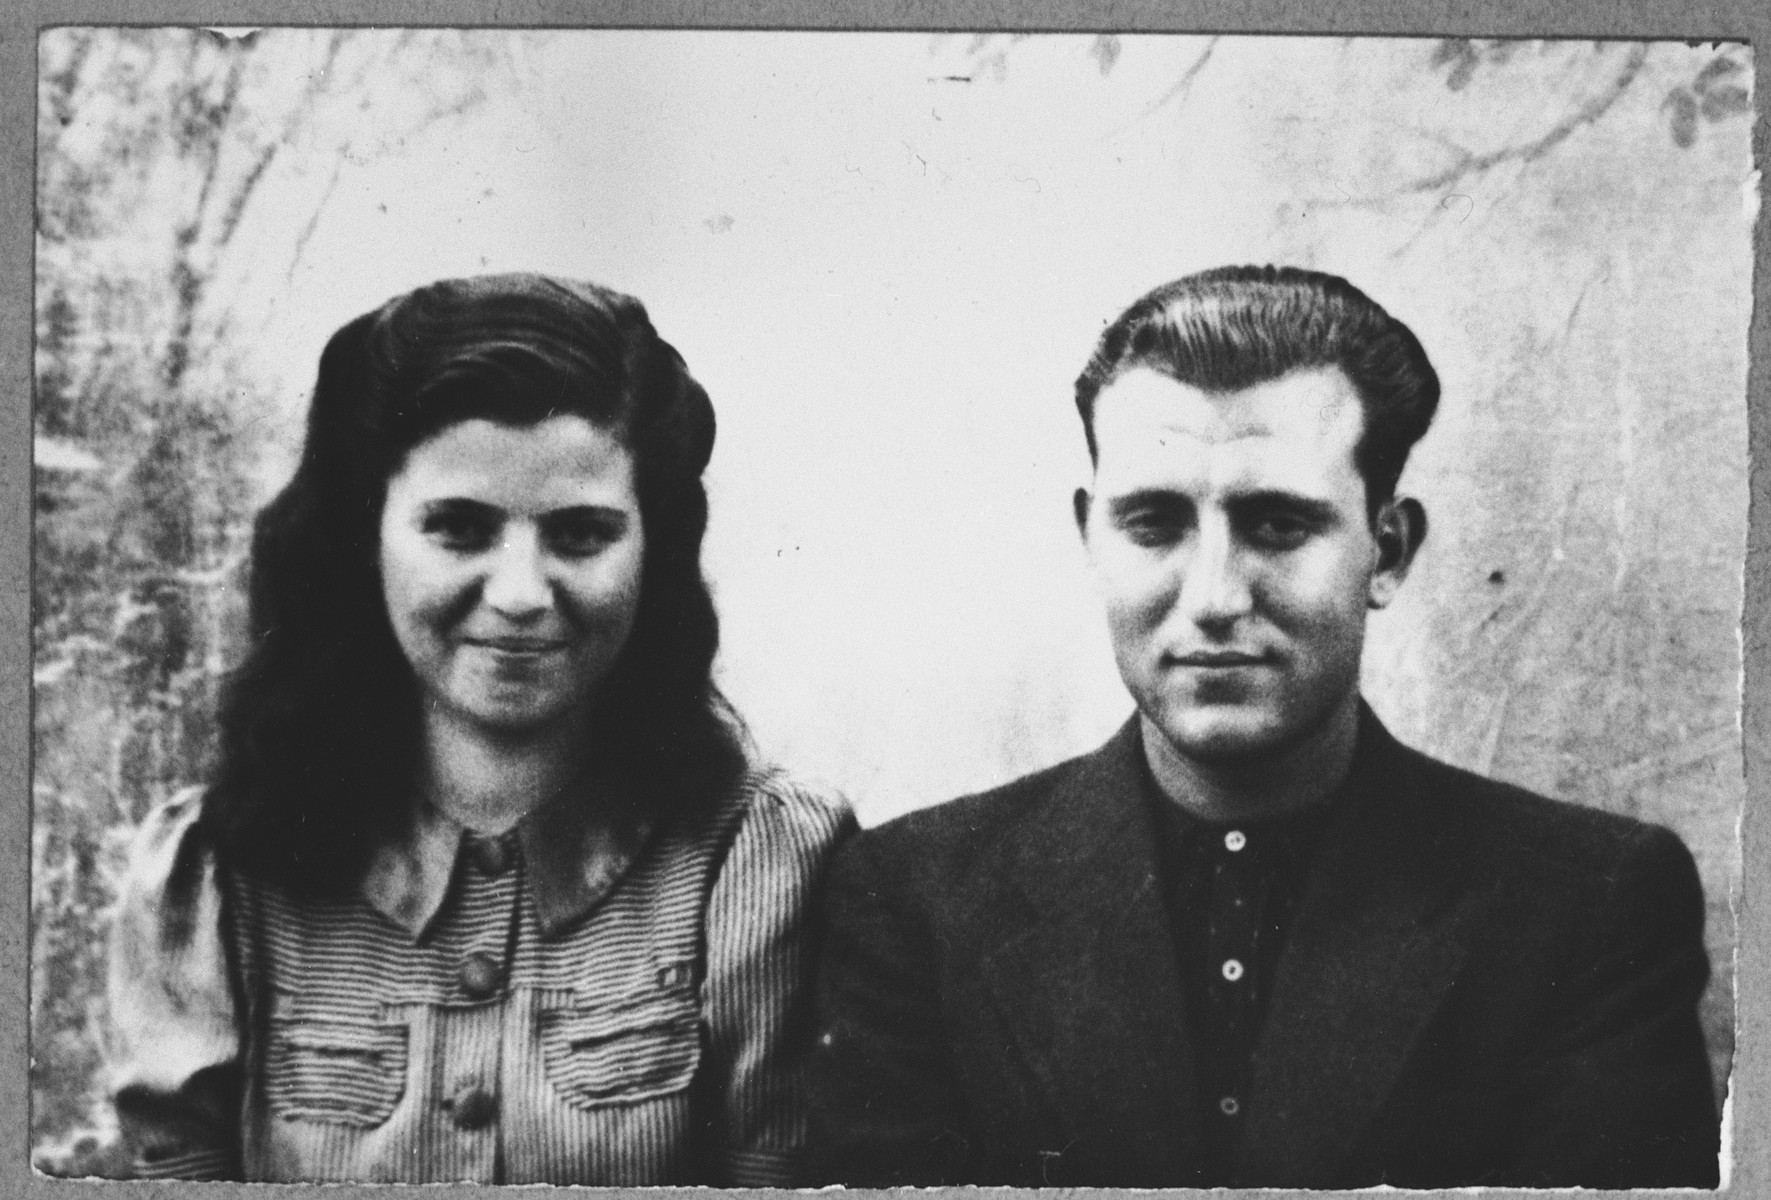 Portrait of Pinchas Koen, son of Haim Koen, and Ester Koen, daughter of Haim Koen.  They were students.  They lived at Putnika 138 in Bitola.